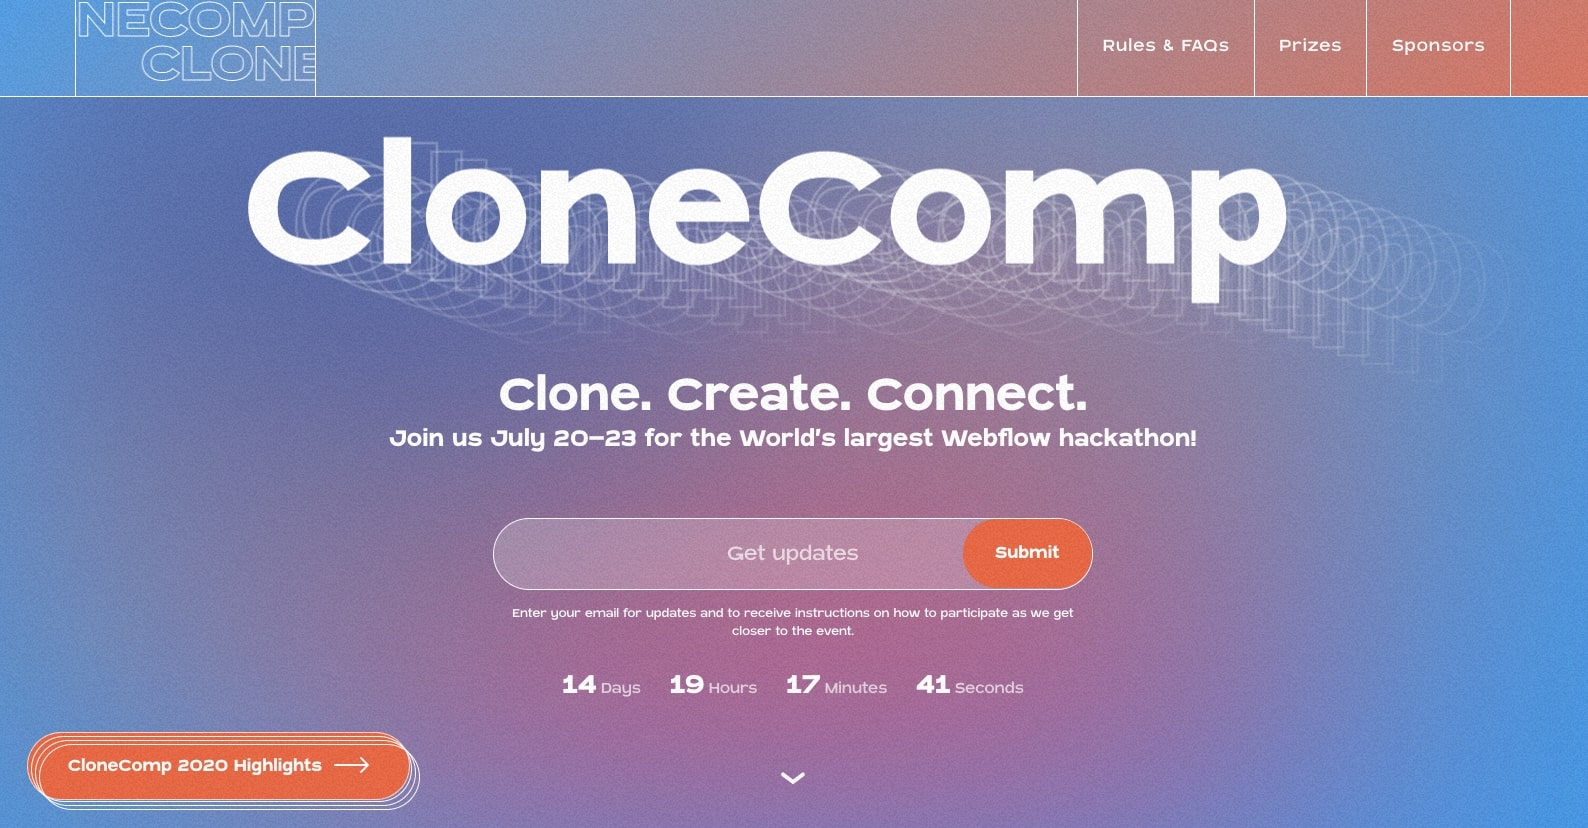 An image of the CloneComp website.